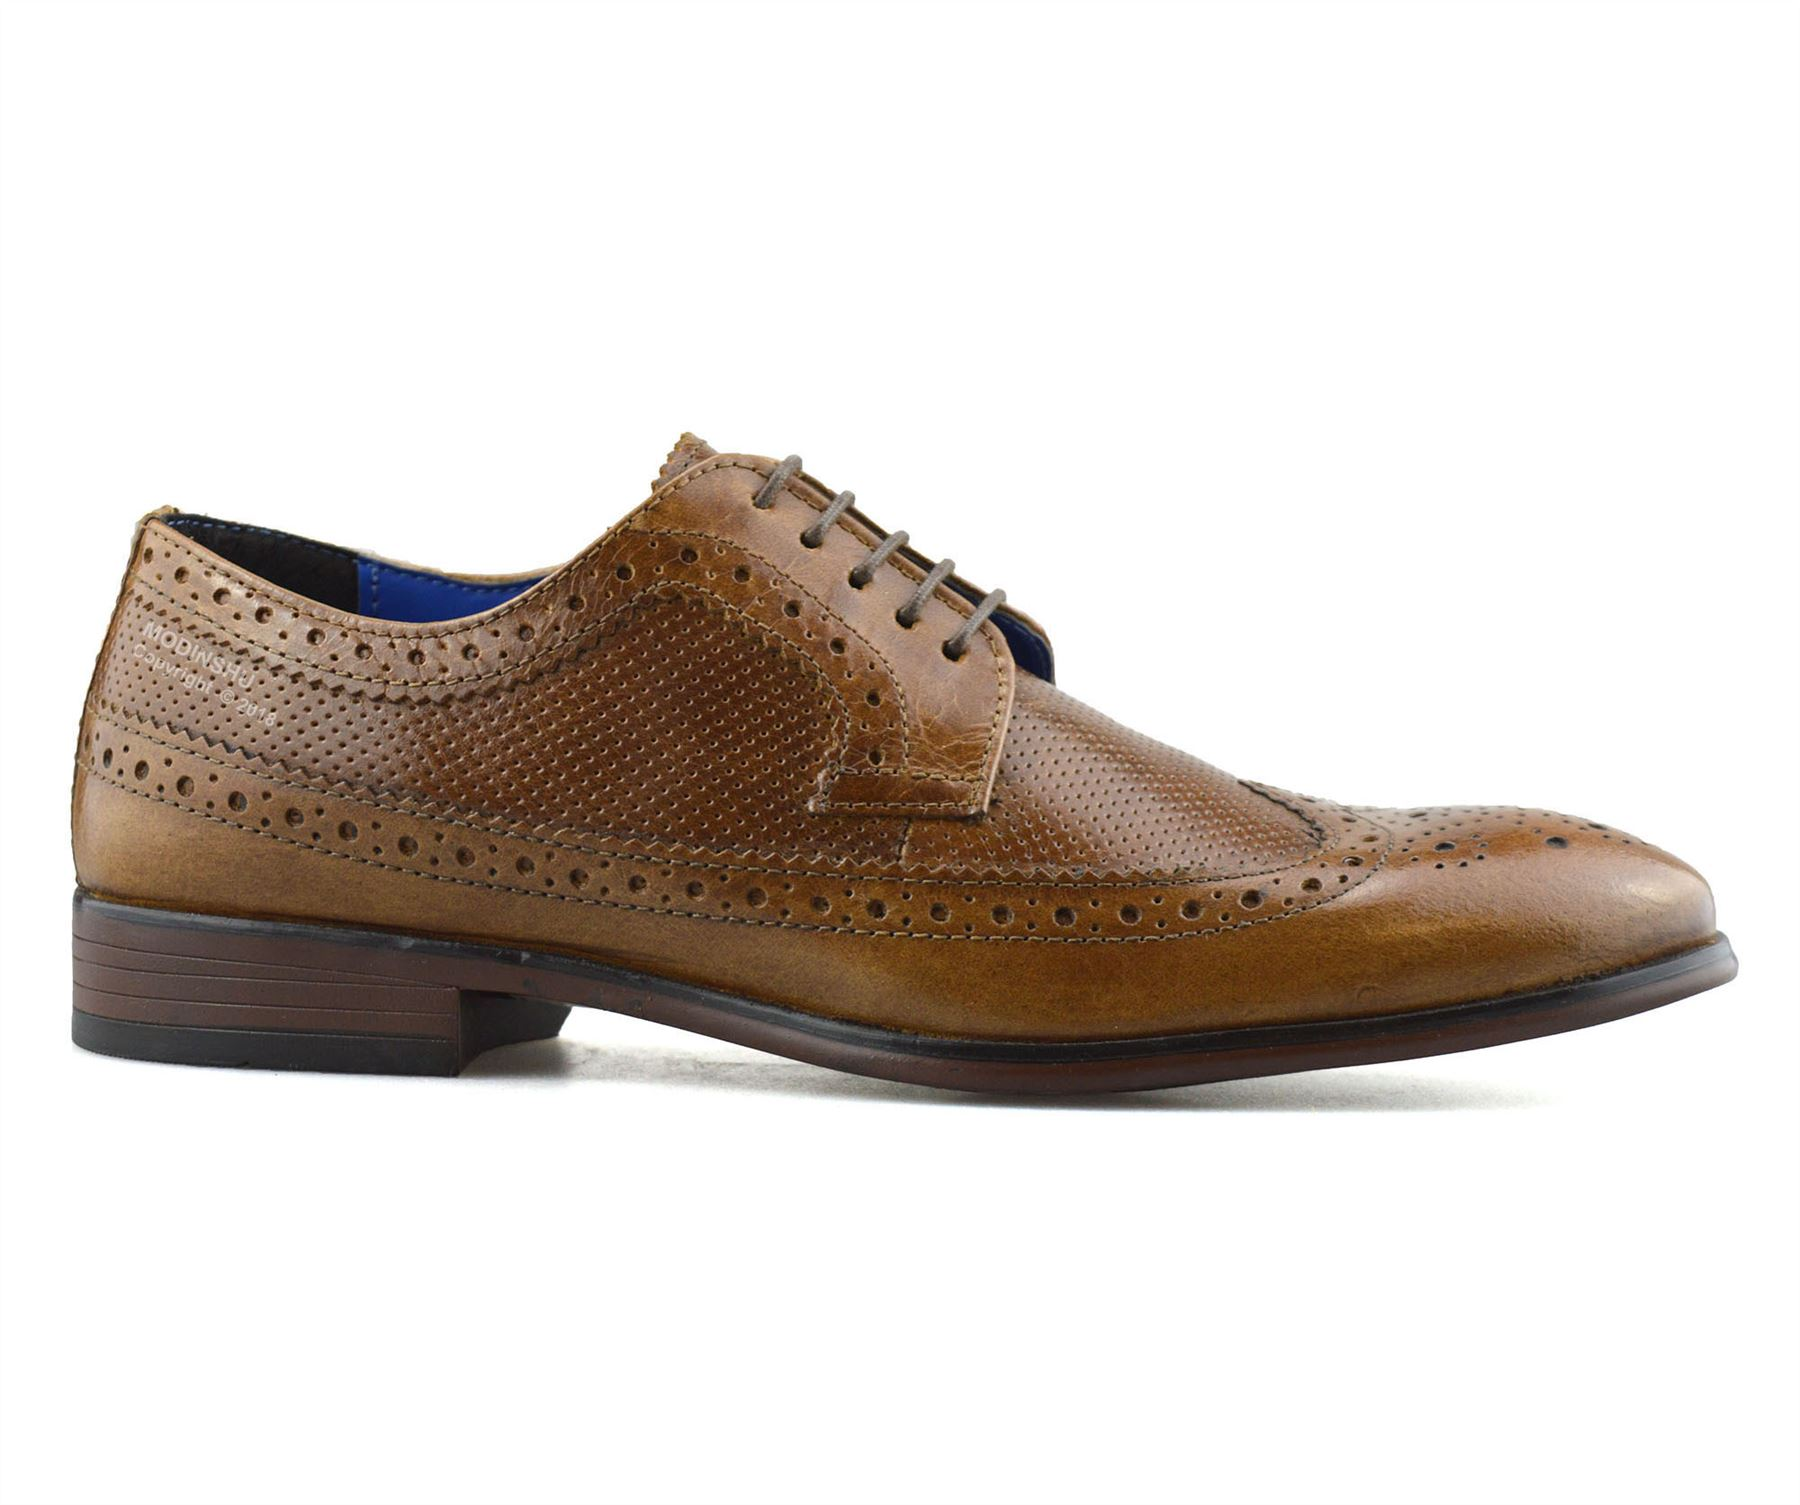 Mens-Leather-Brogues-Smart-Casual-Formal-Office-Lace-Up-Oxford-Brogue-Shoes-Size thumbnail 13